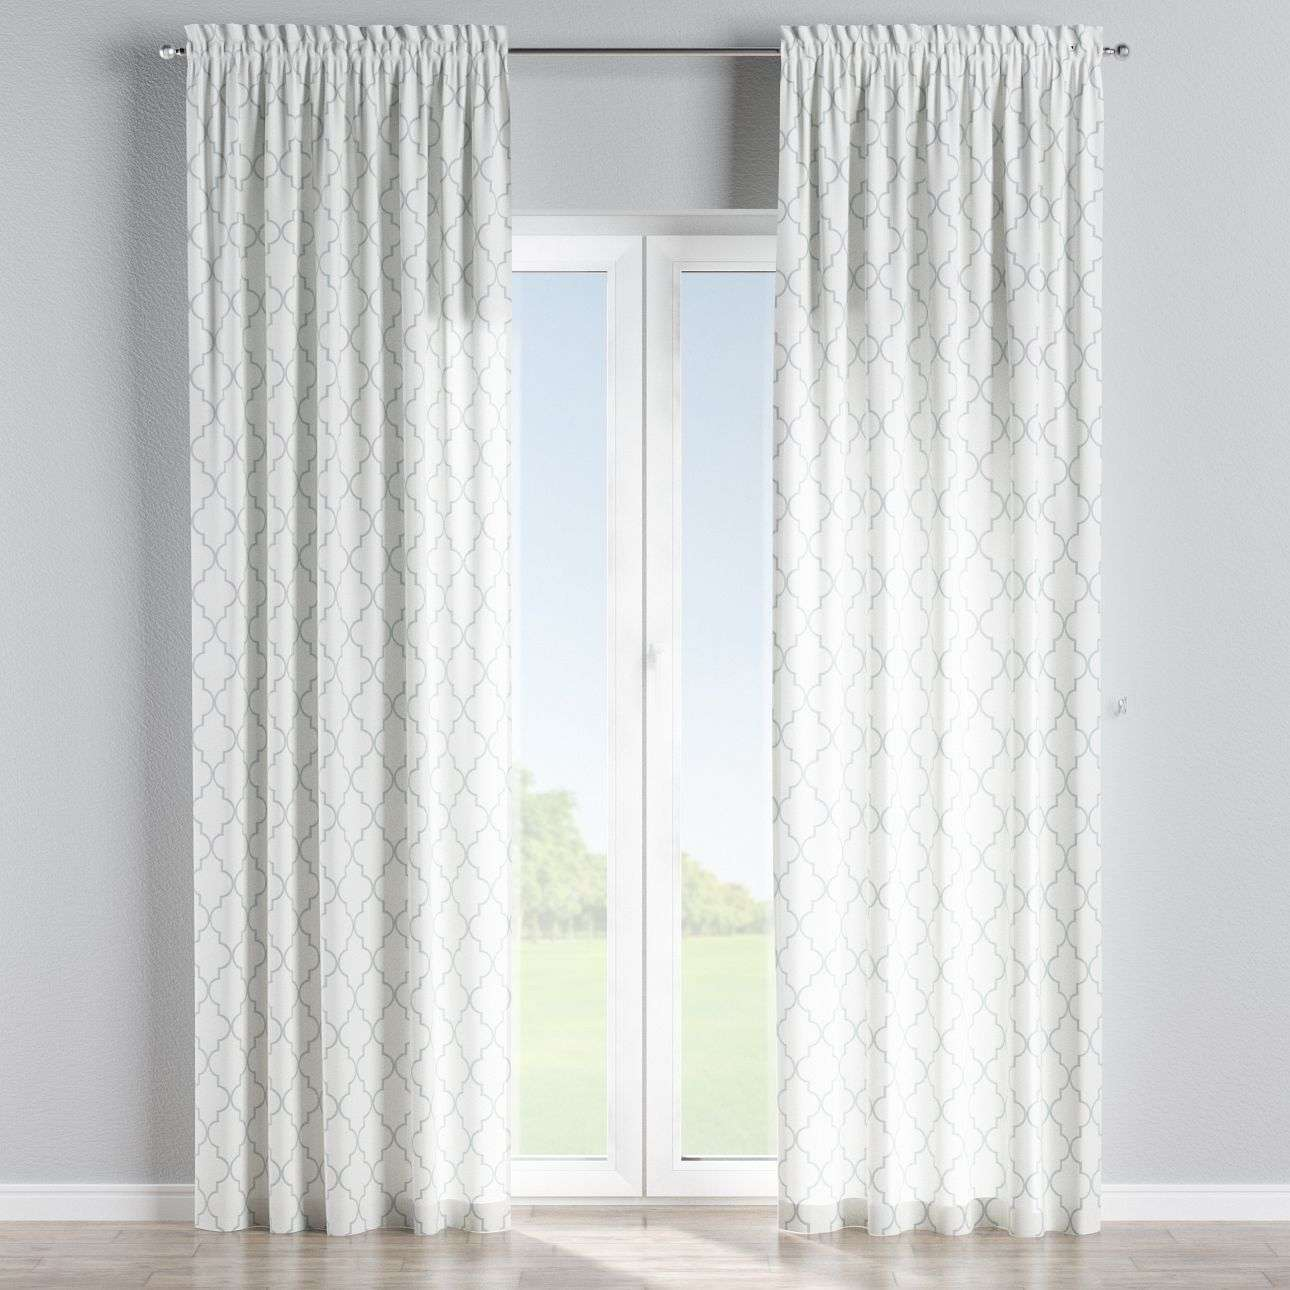 Slot and frill curtains in collection Comics/Geometrical, fabric: 137-85